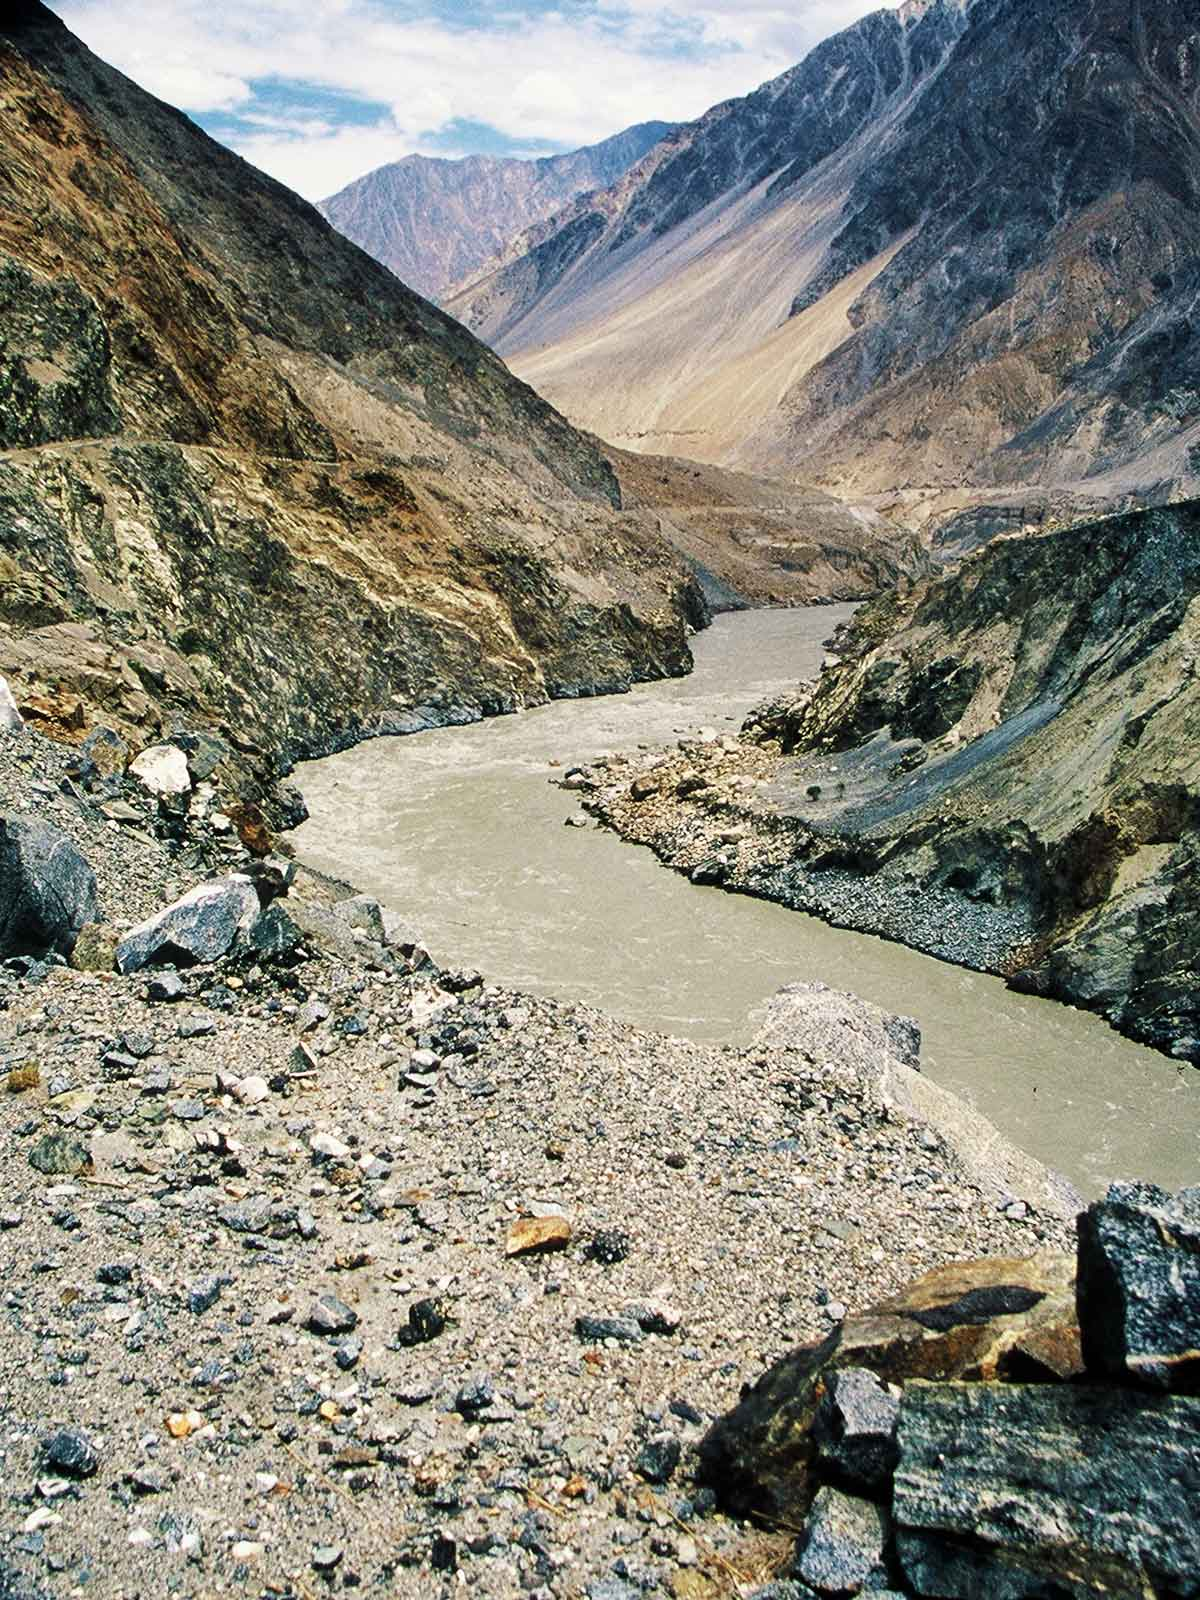 Indus River Valley - Gilgit-Baltistan region - Pakistan Photo Journal - Karakoram Highway - Steven Martin - Silk Road